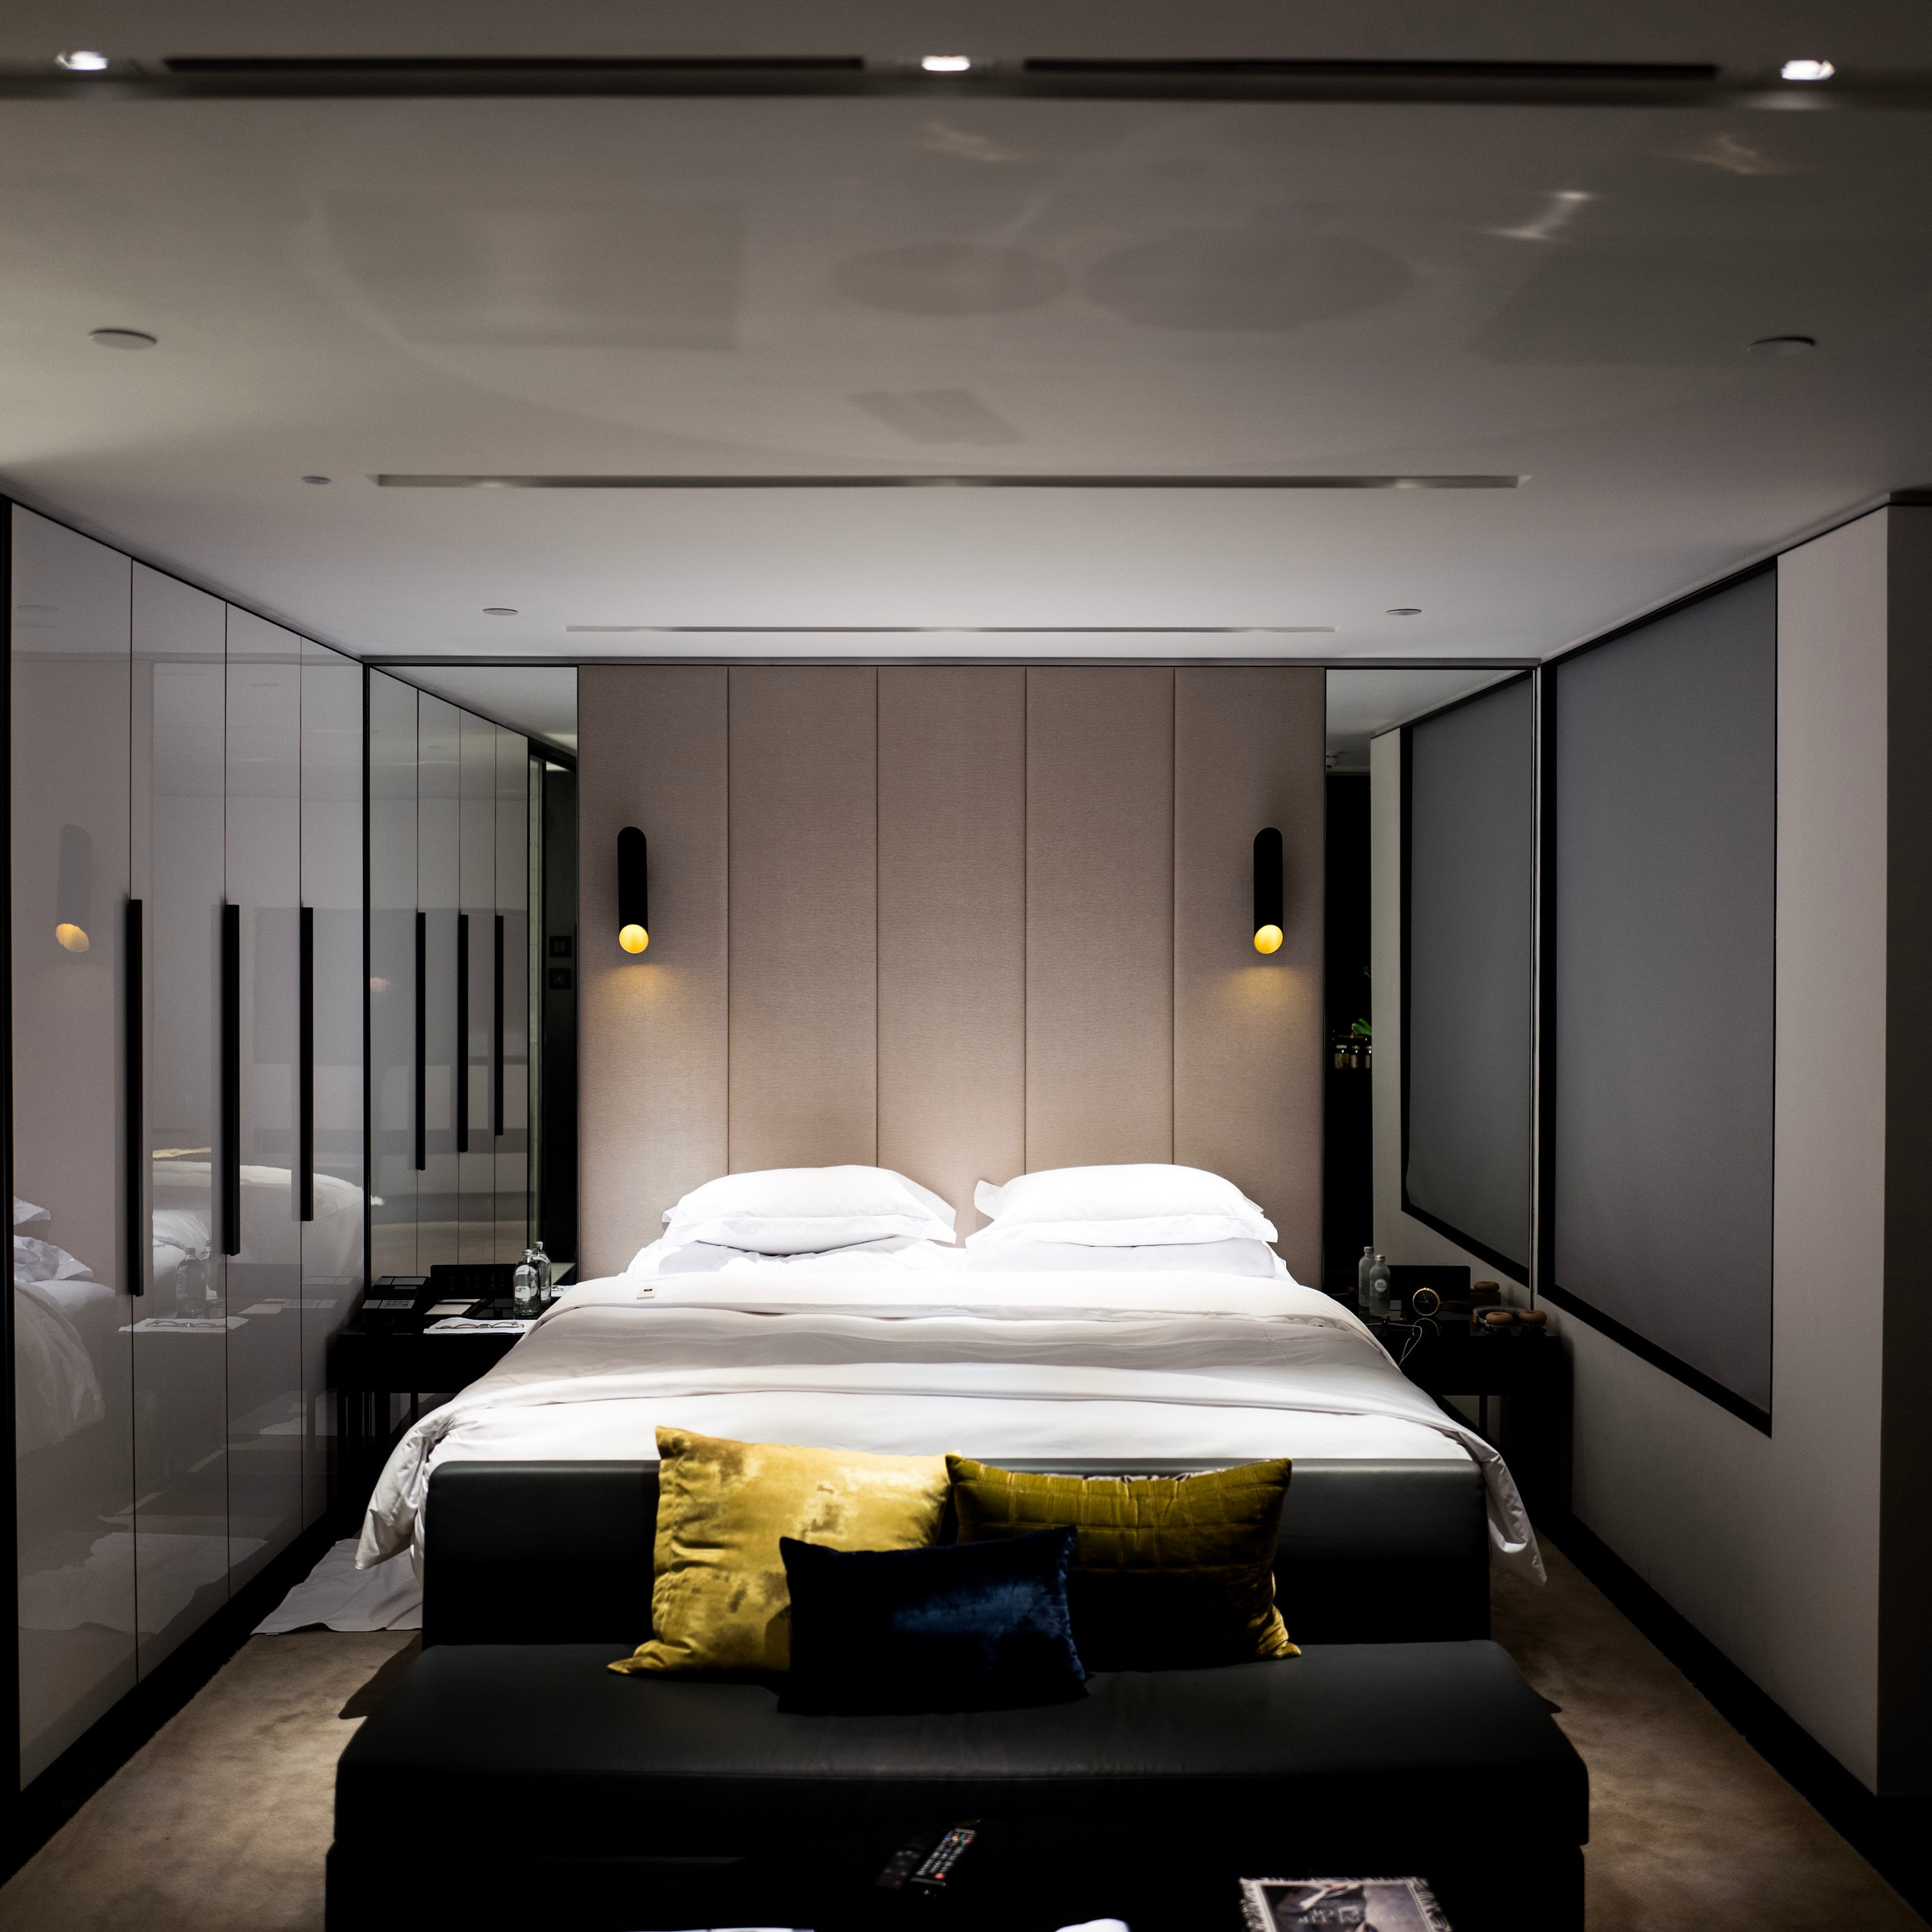 Interior photography of a bedroom with mirrors and lighting